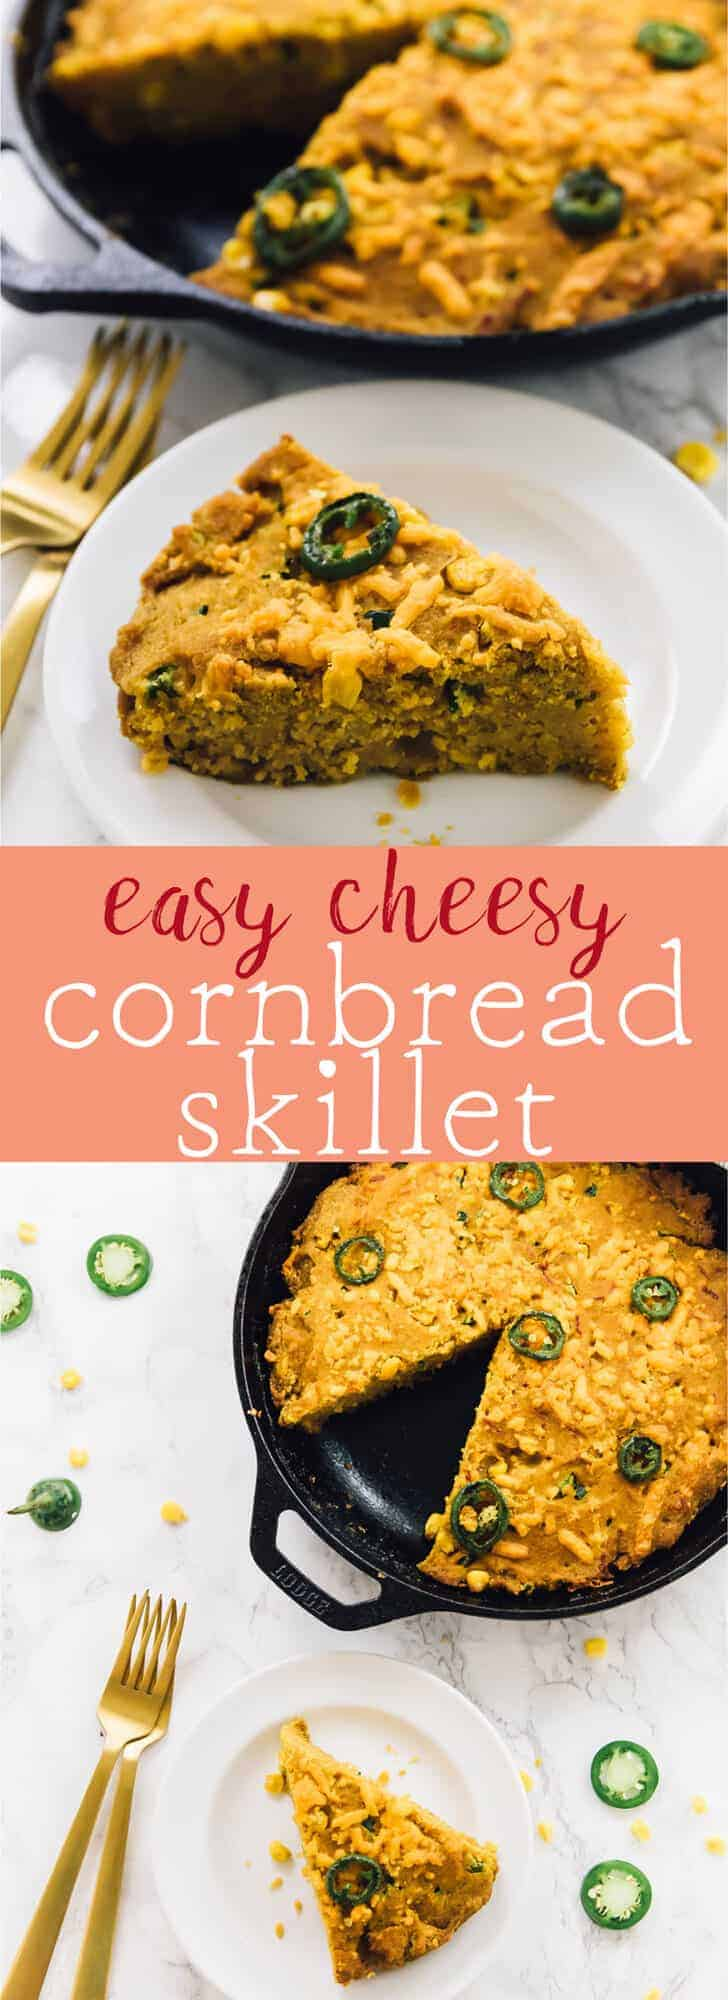 This Easy Cheesy Cornbread Skillet (Vegan & Gluten Free) has the best cornbread crust ever! It's so fluffy, loaded with so much flavour and is so addictive! via https://jessicainthekitchen.com